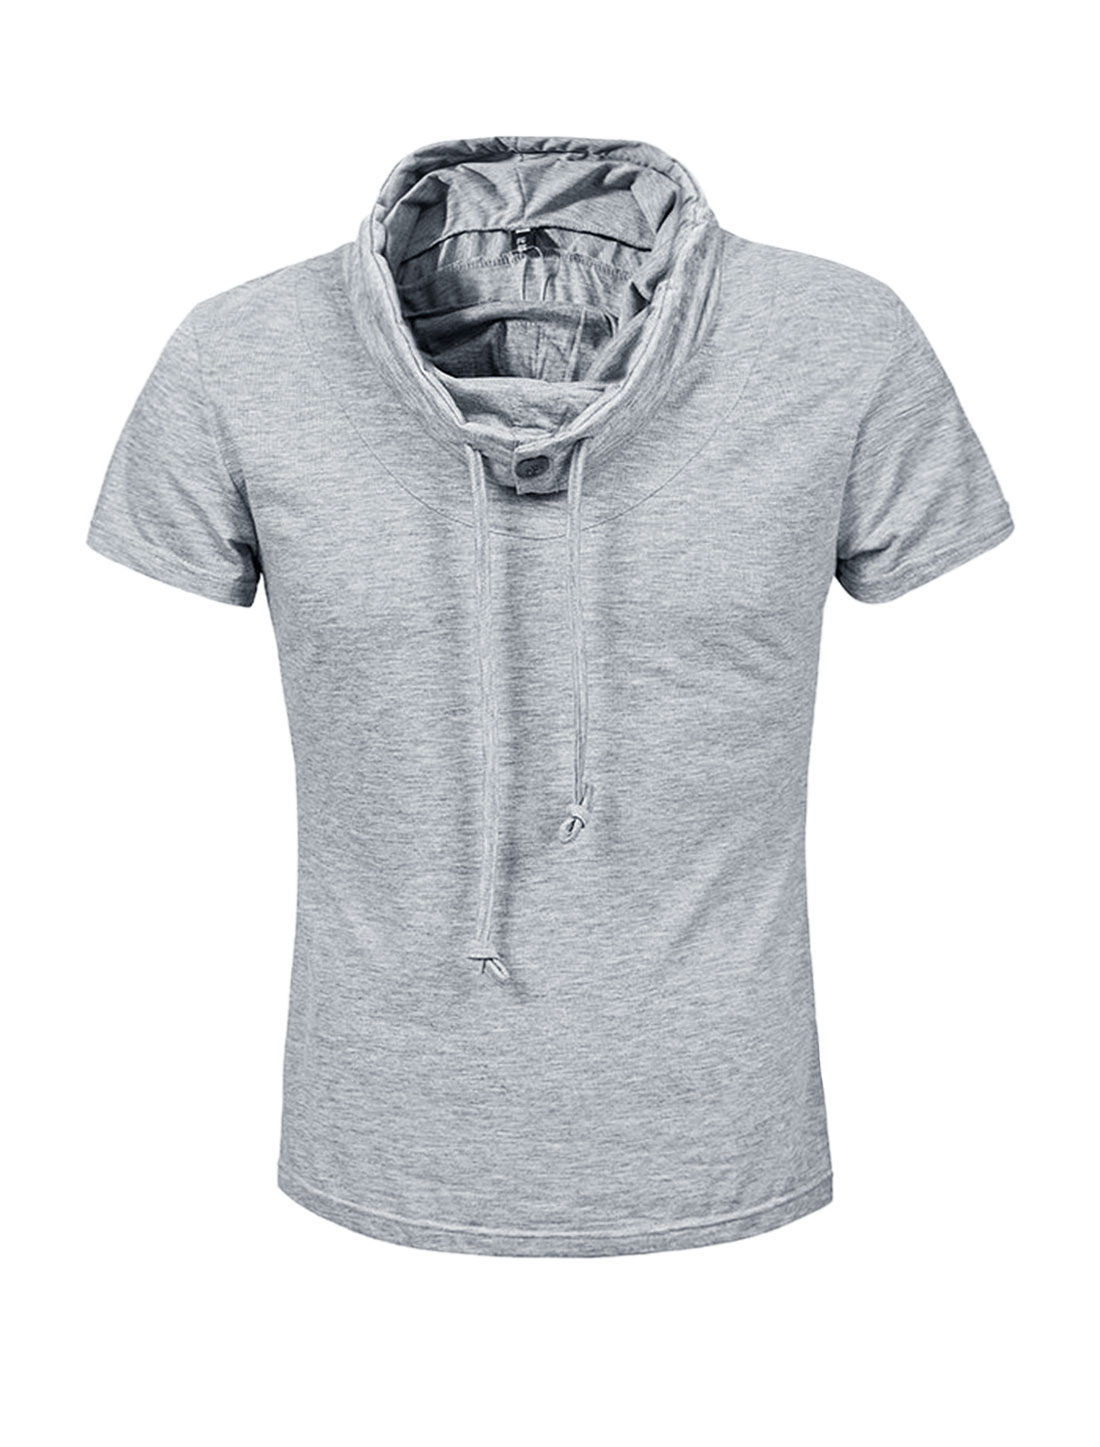 Men Buttoned Drawstring Cowl Neck Slim Fit Tee Shirt Gray S